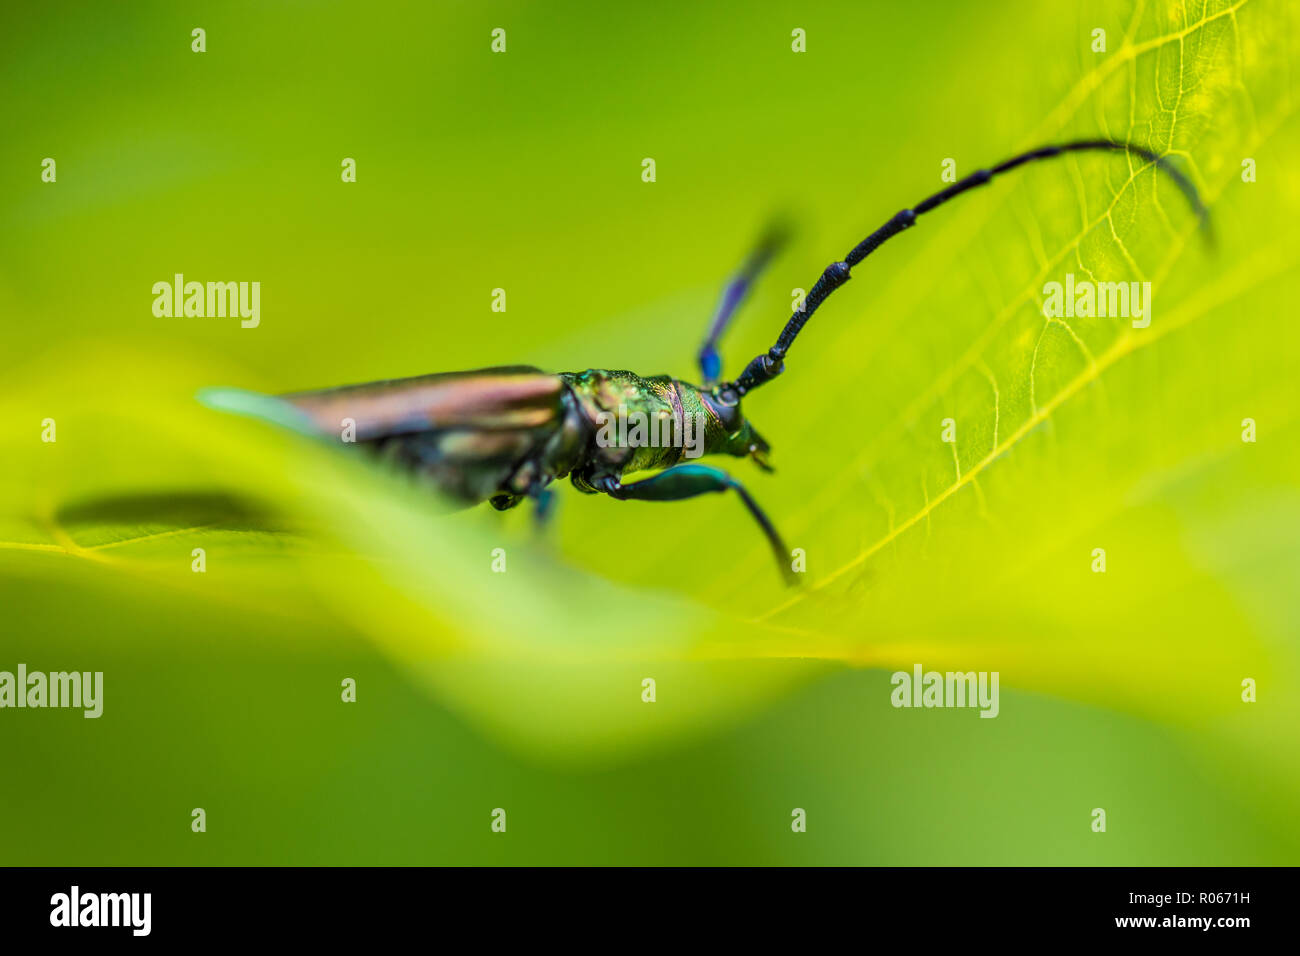 Huge insect on green leaf, nature background, wildlife concept. Macro image with details - Stock Image